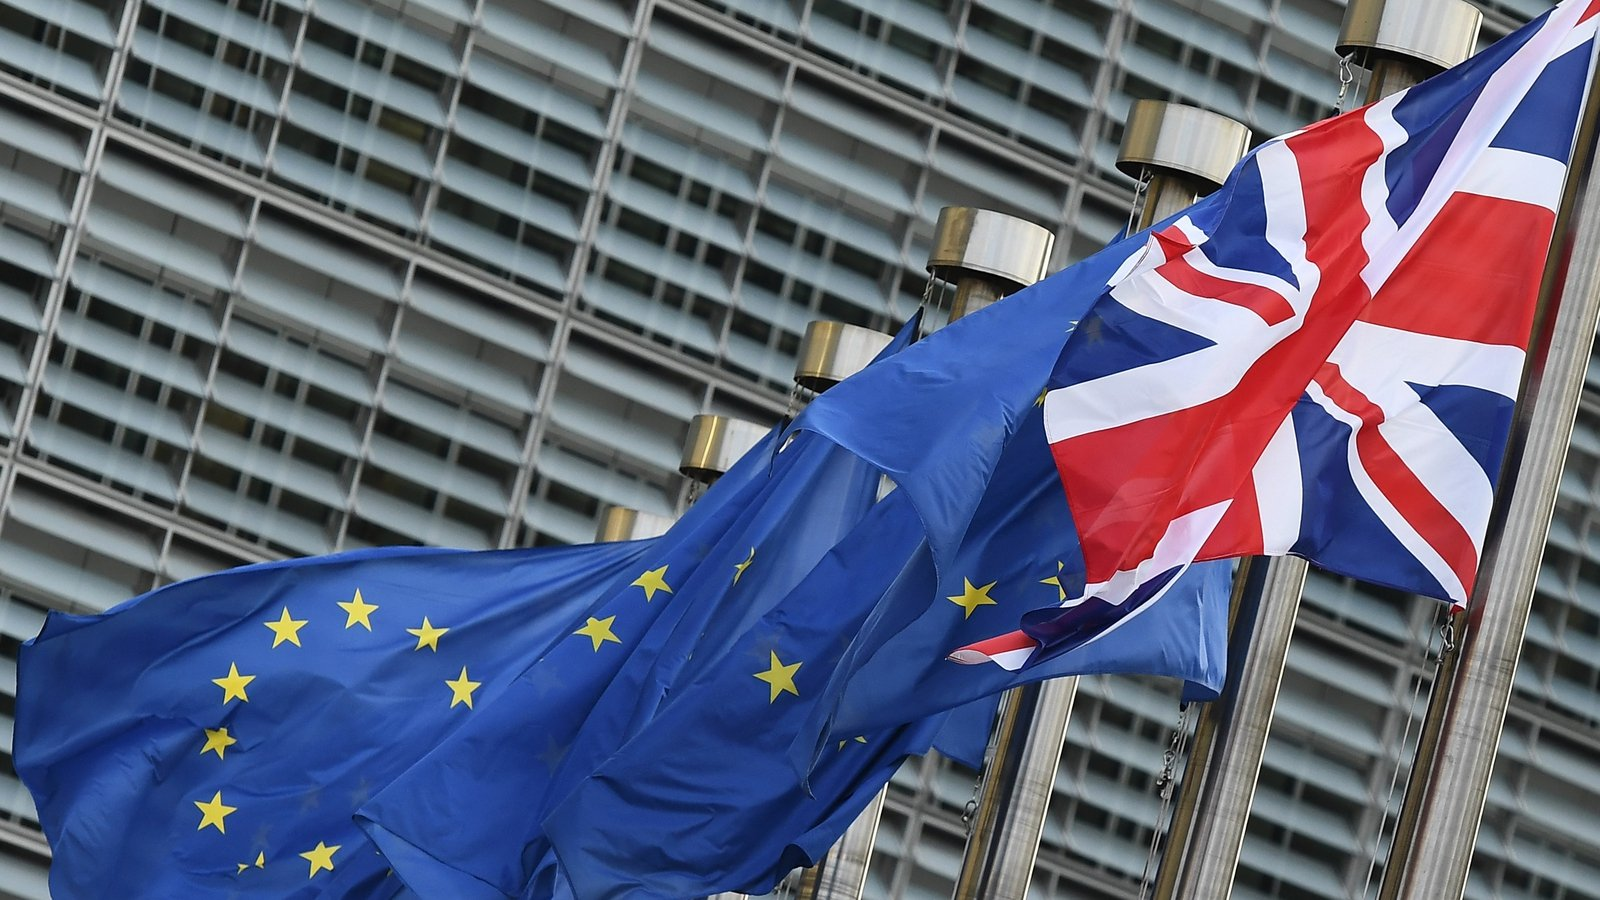 rte.ie - European dismay at UK 'chaos and confusion' over Brexit